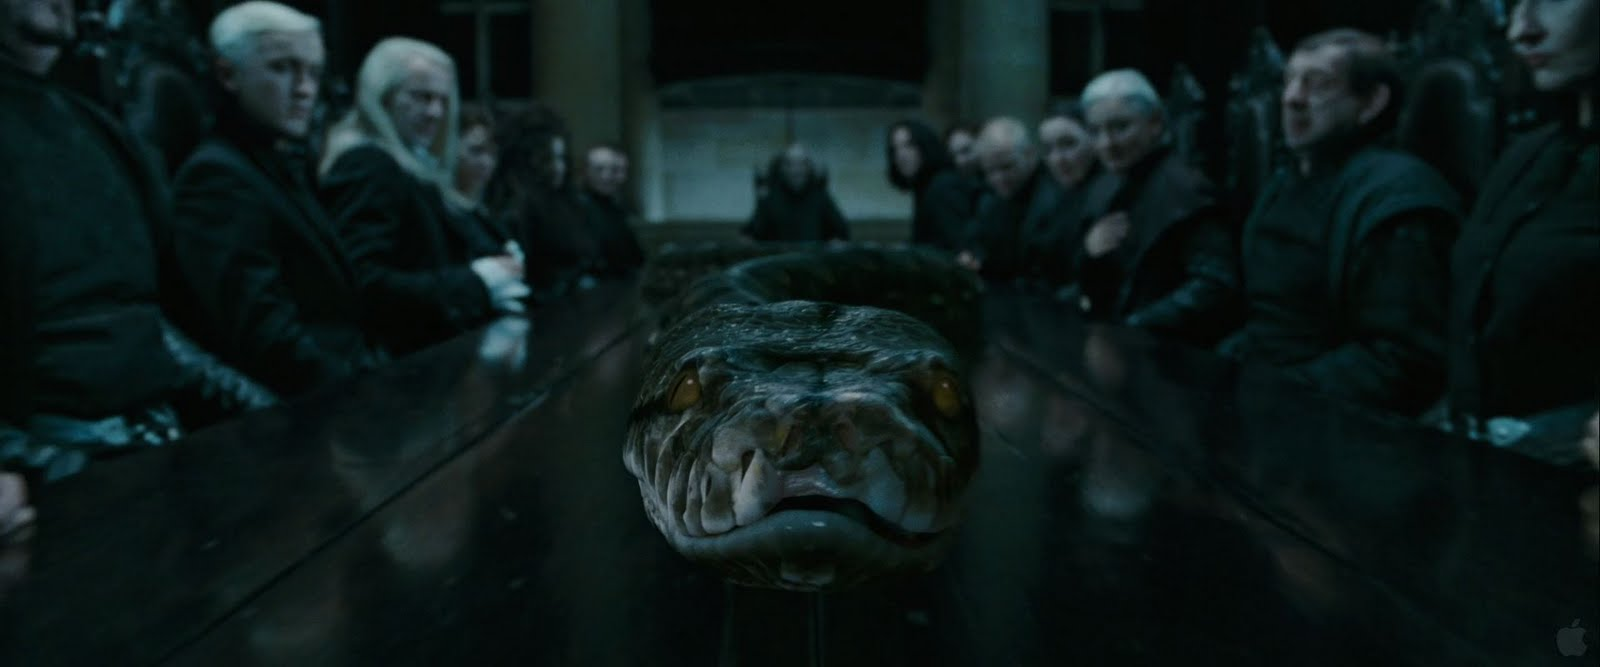 death star pr: lord voldemort: behind the basilisk